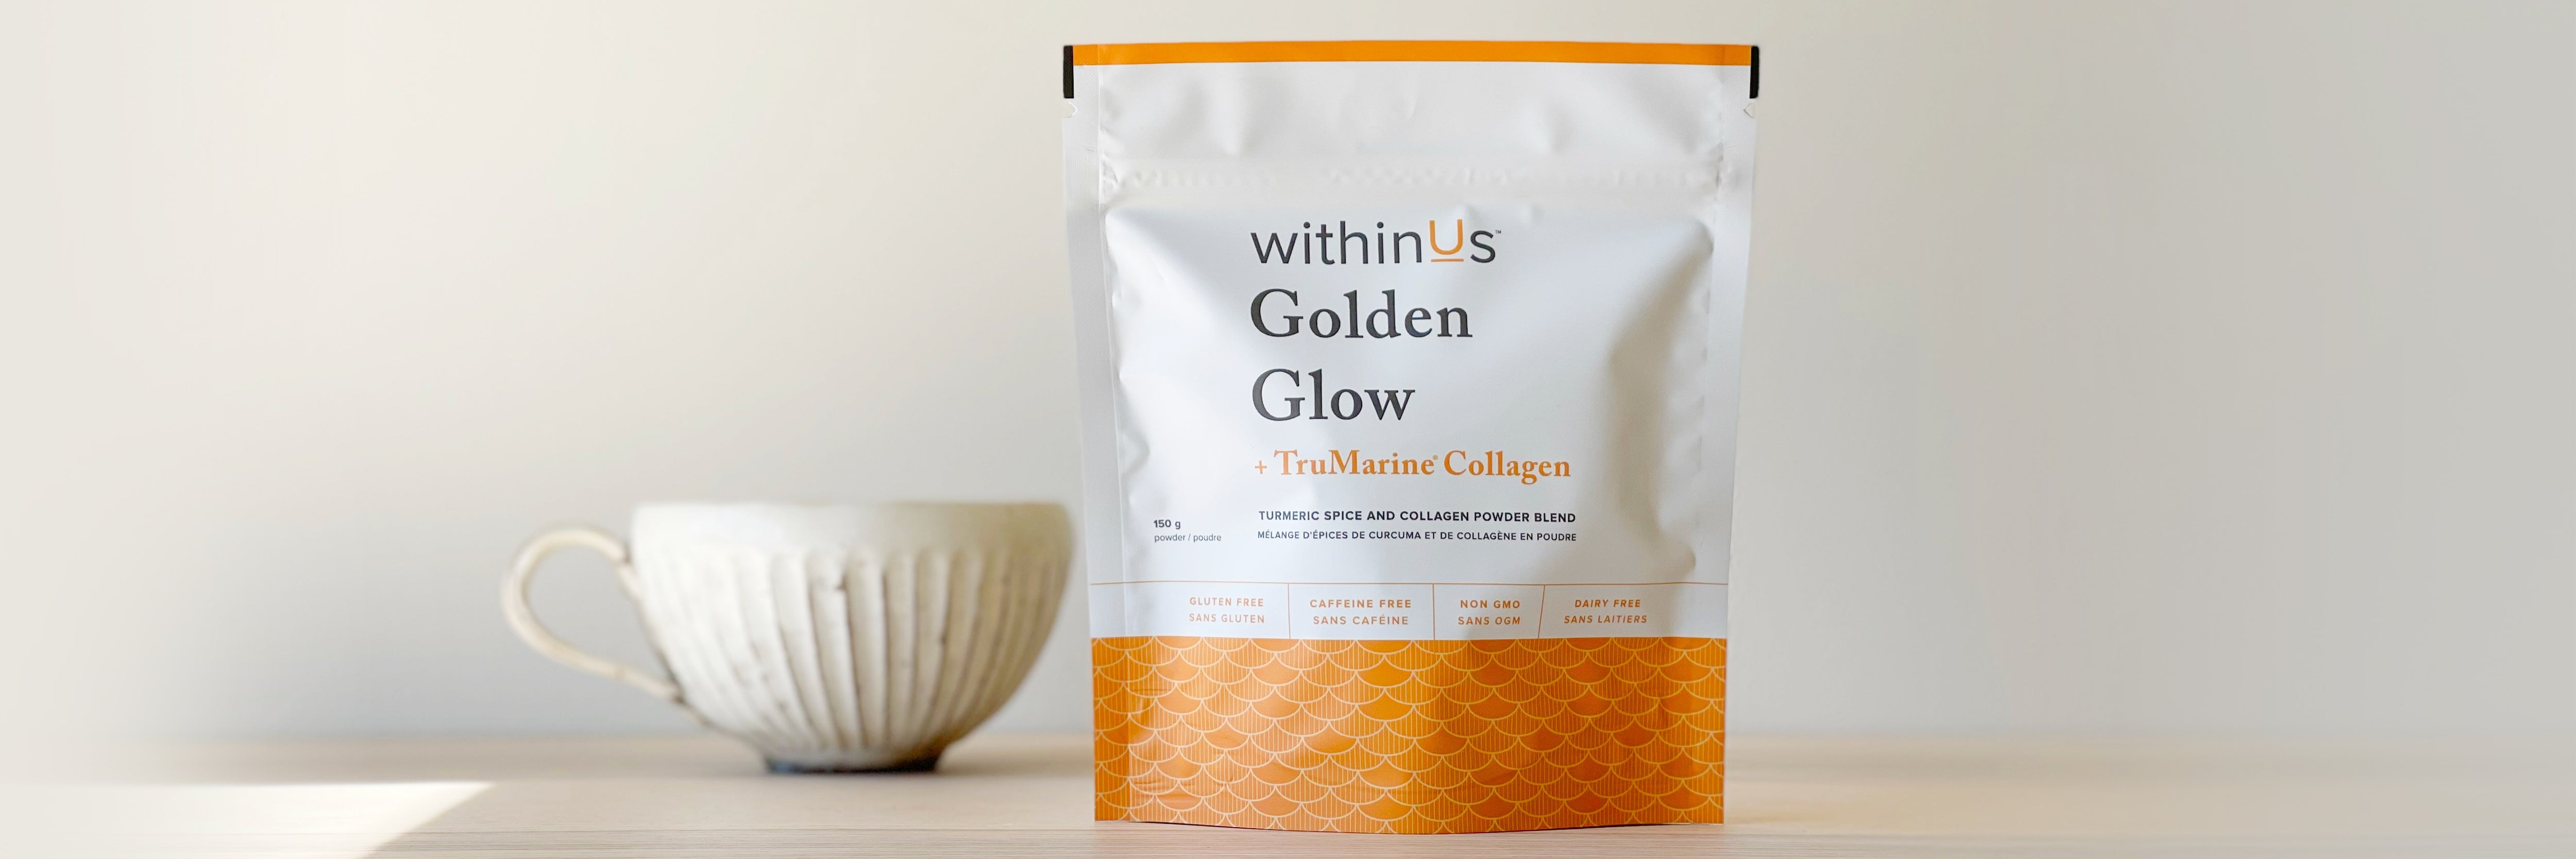 withinUs™ Golden Glow™ + TruMarine® Collagen is the perfect blend of traditional and modern.